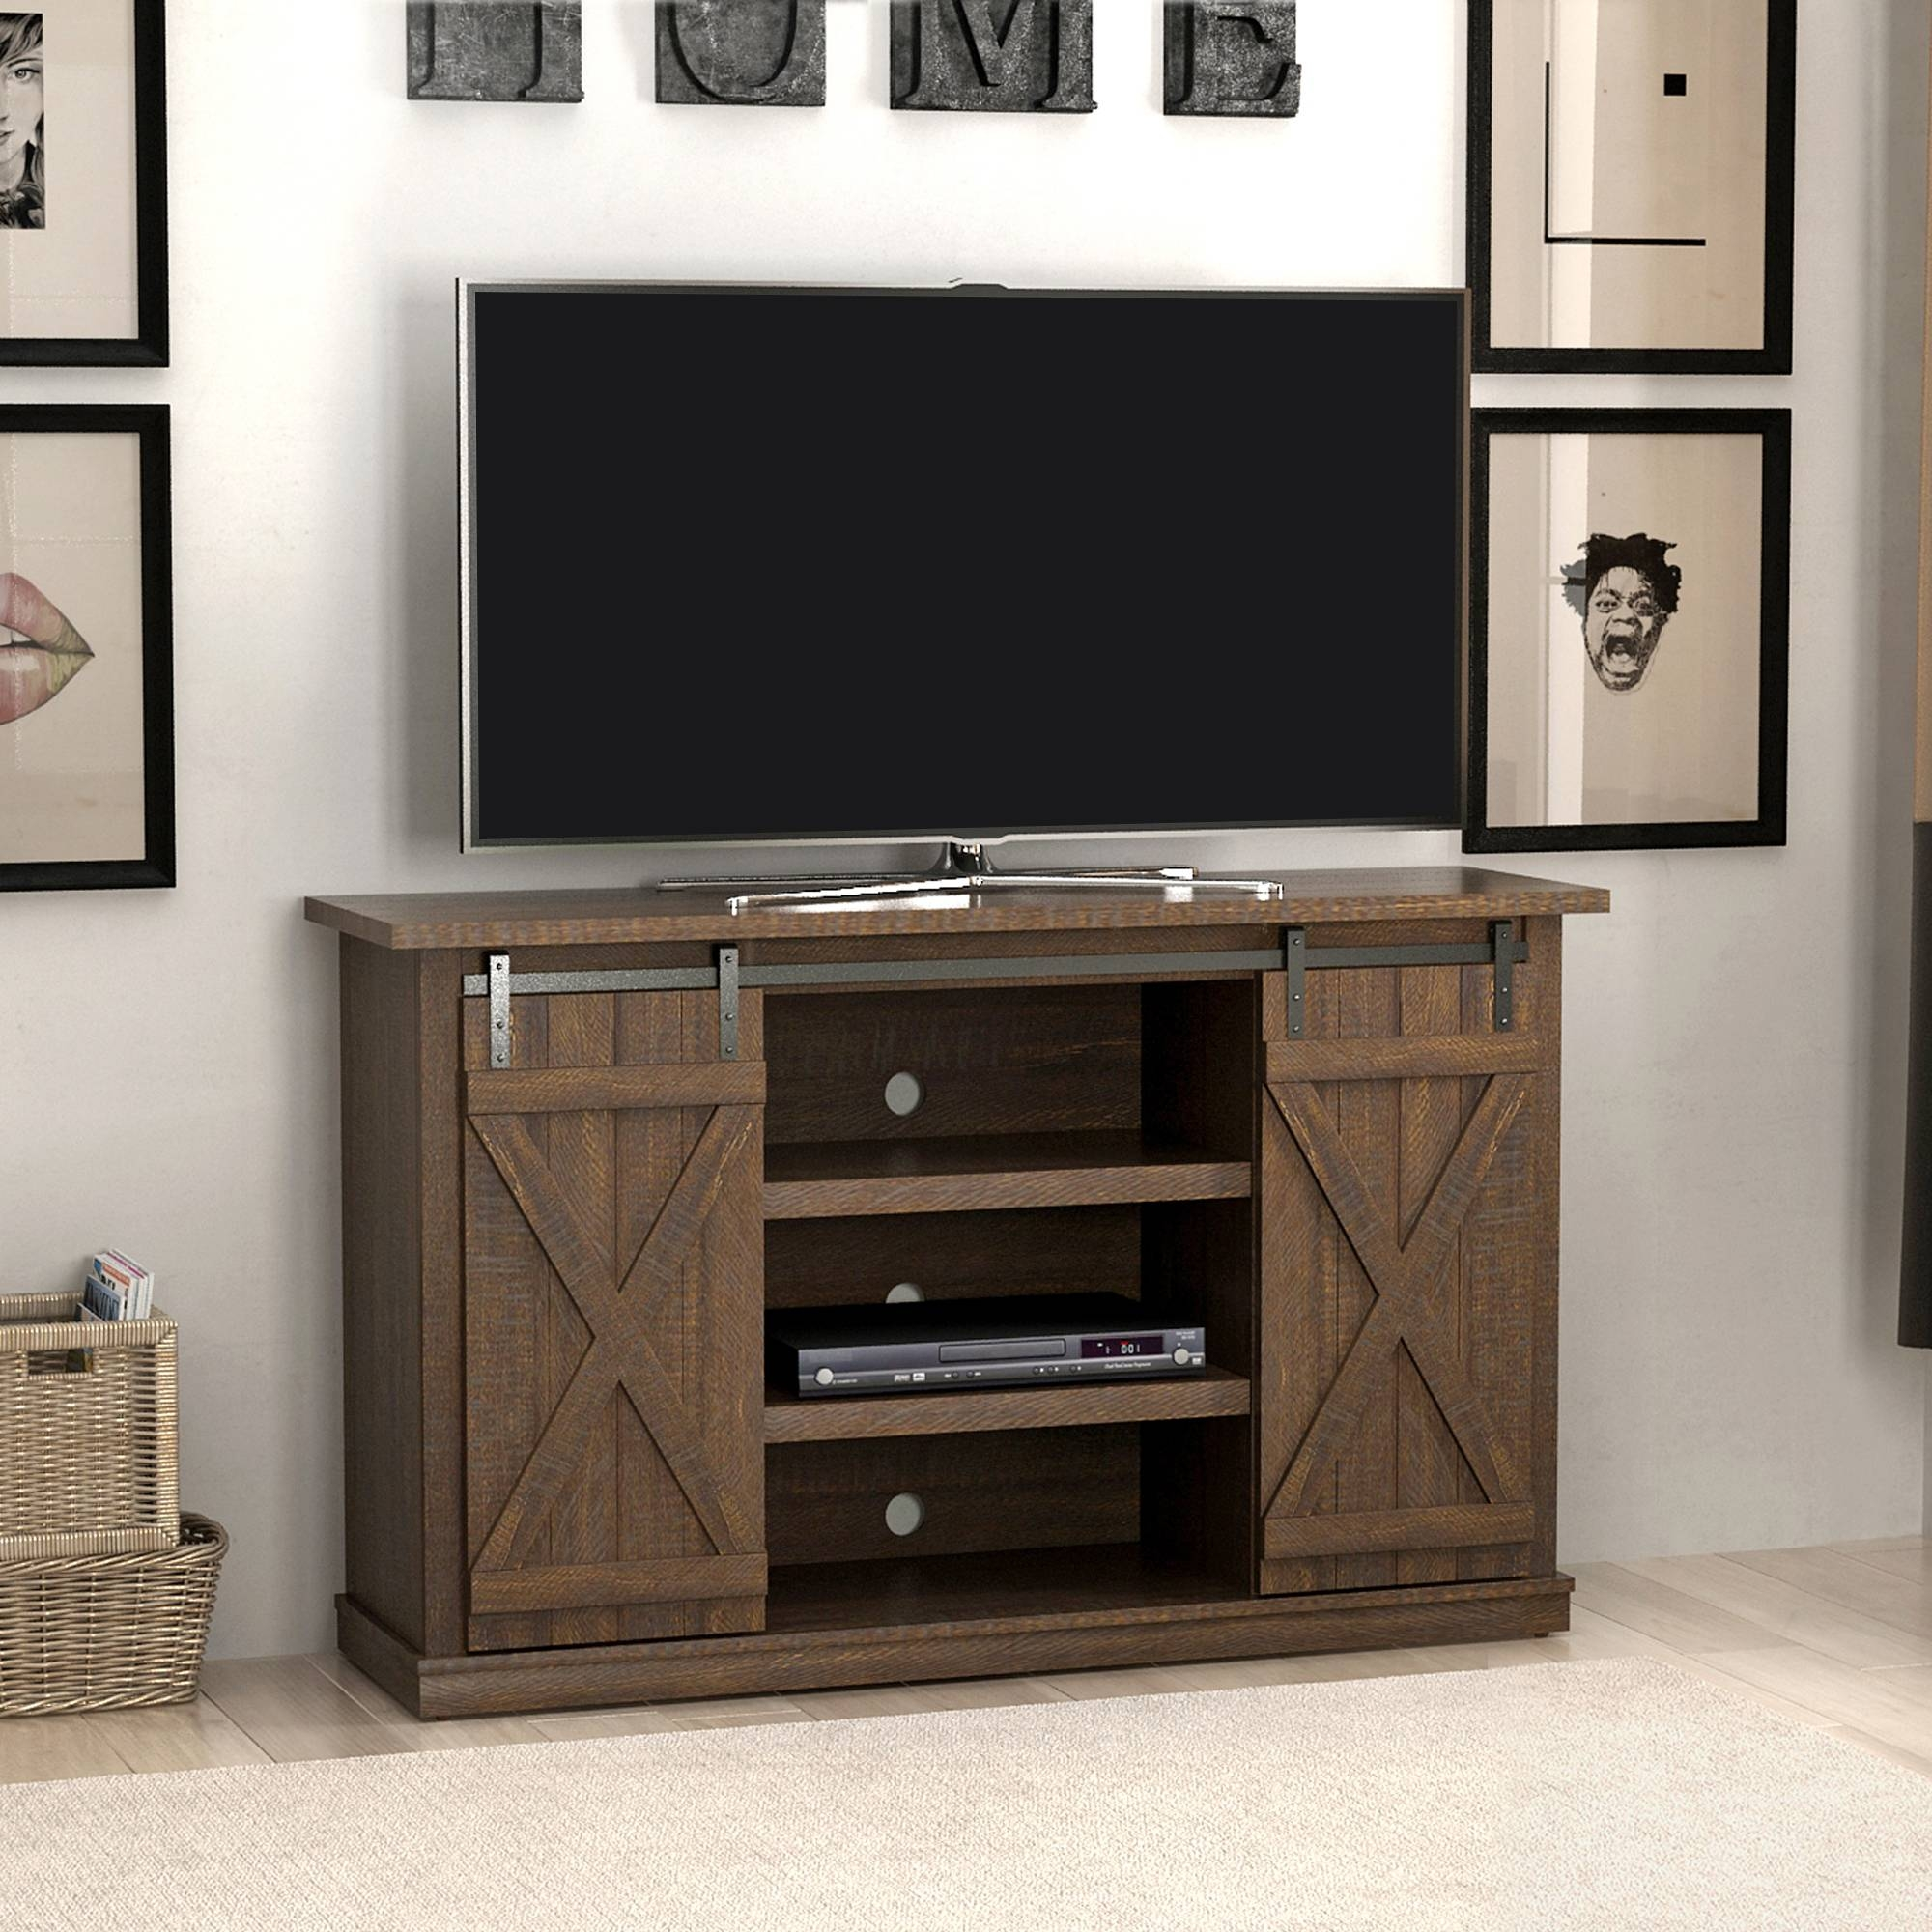 Tv Stands - Walmart within 24 Inch Deep Tv Stands (Image 12 of 15)